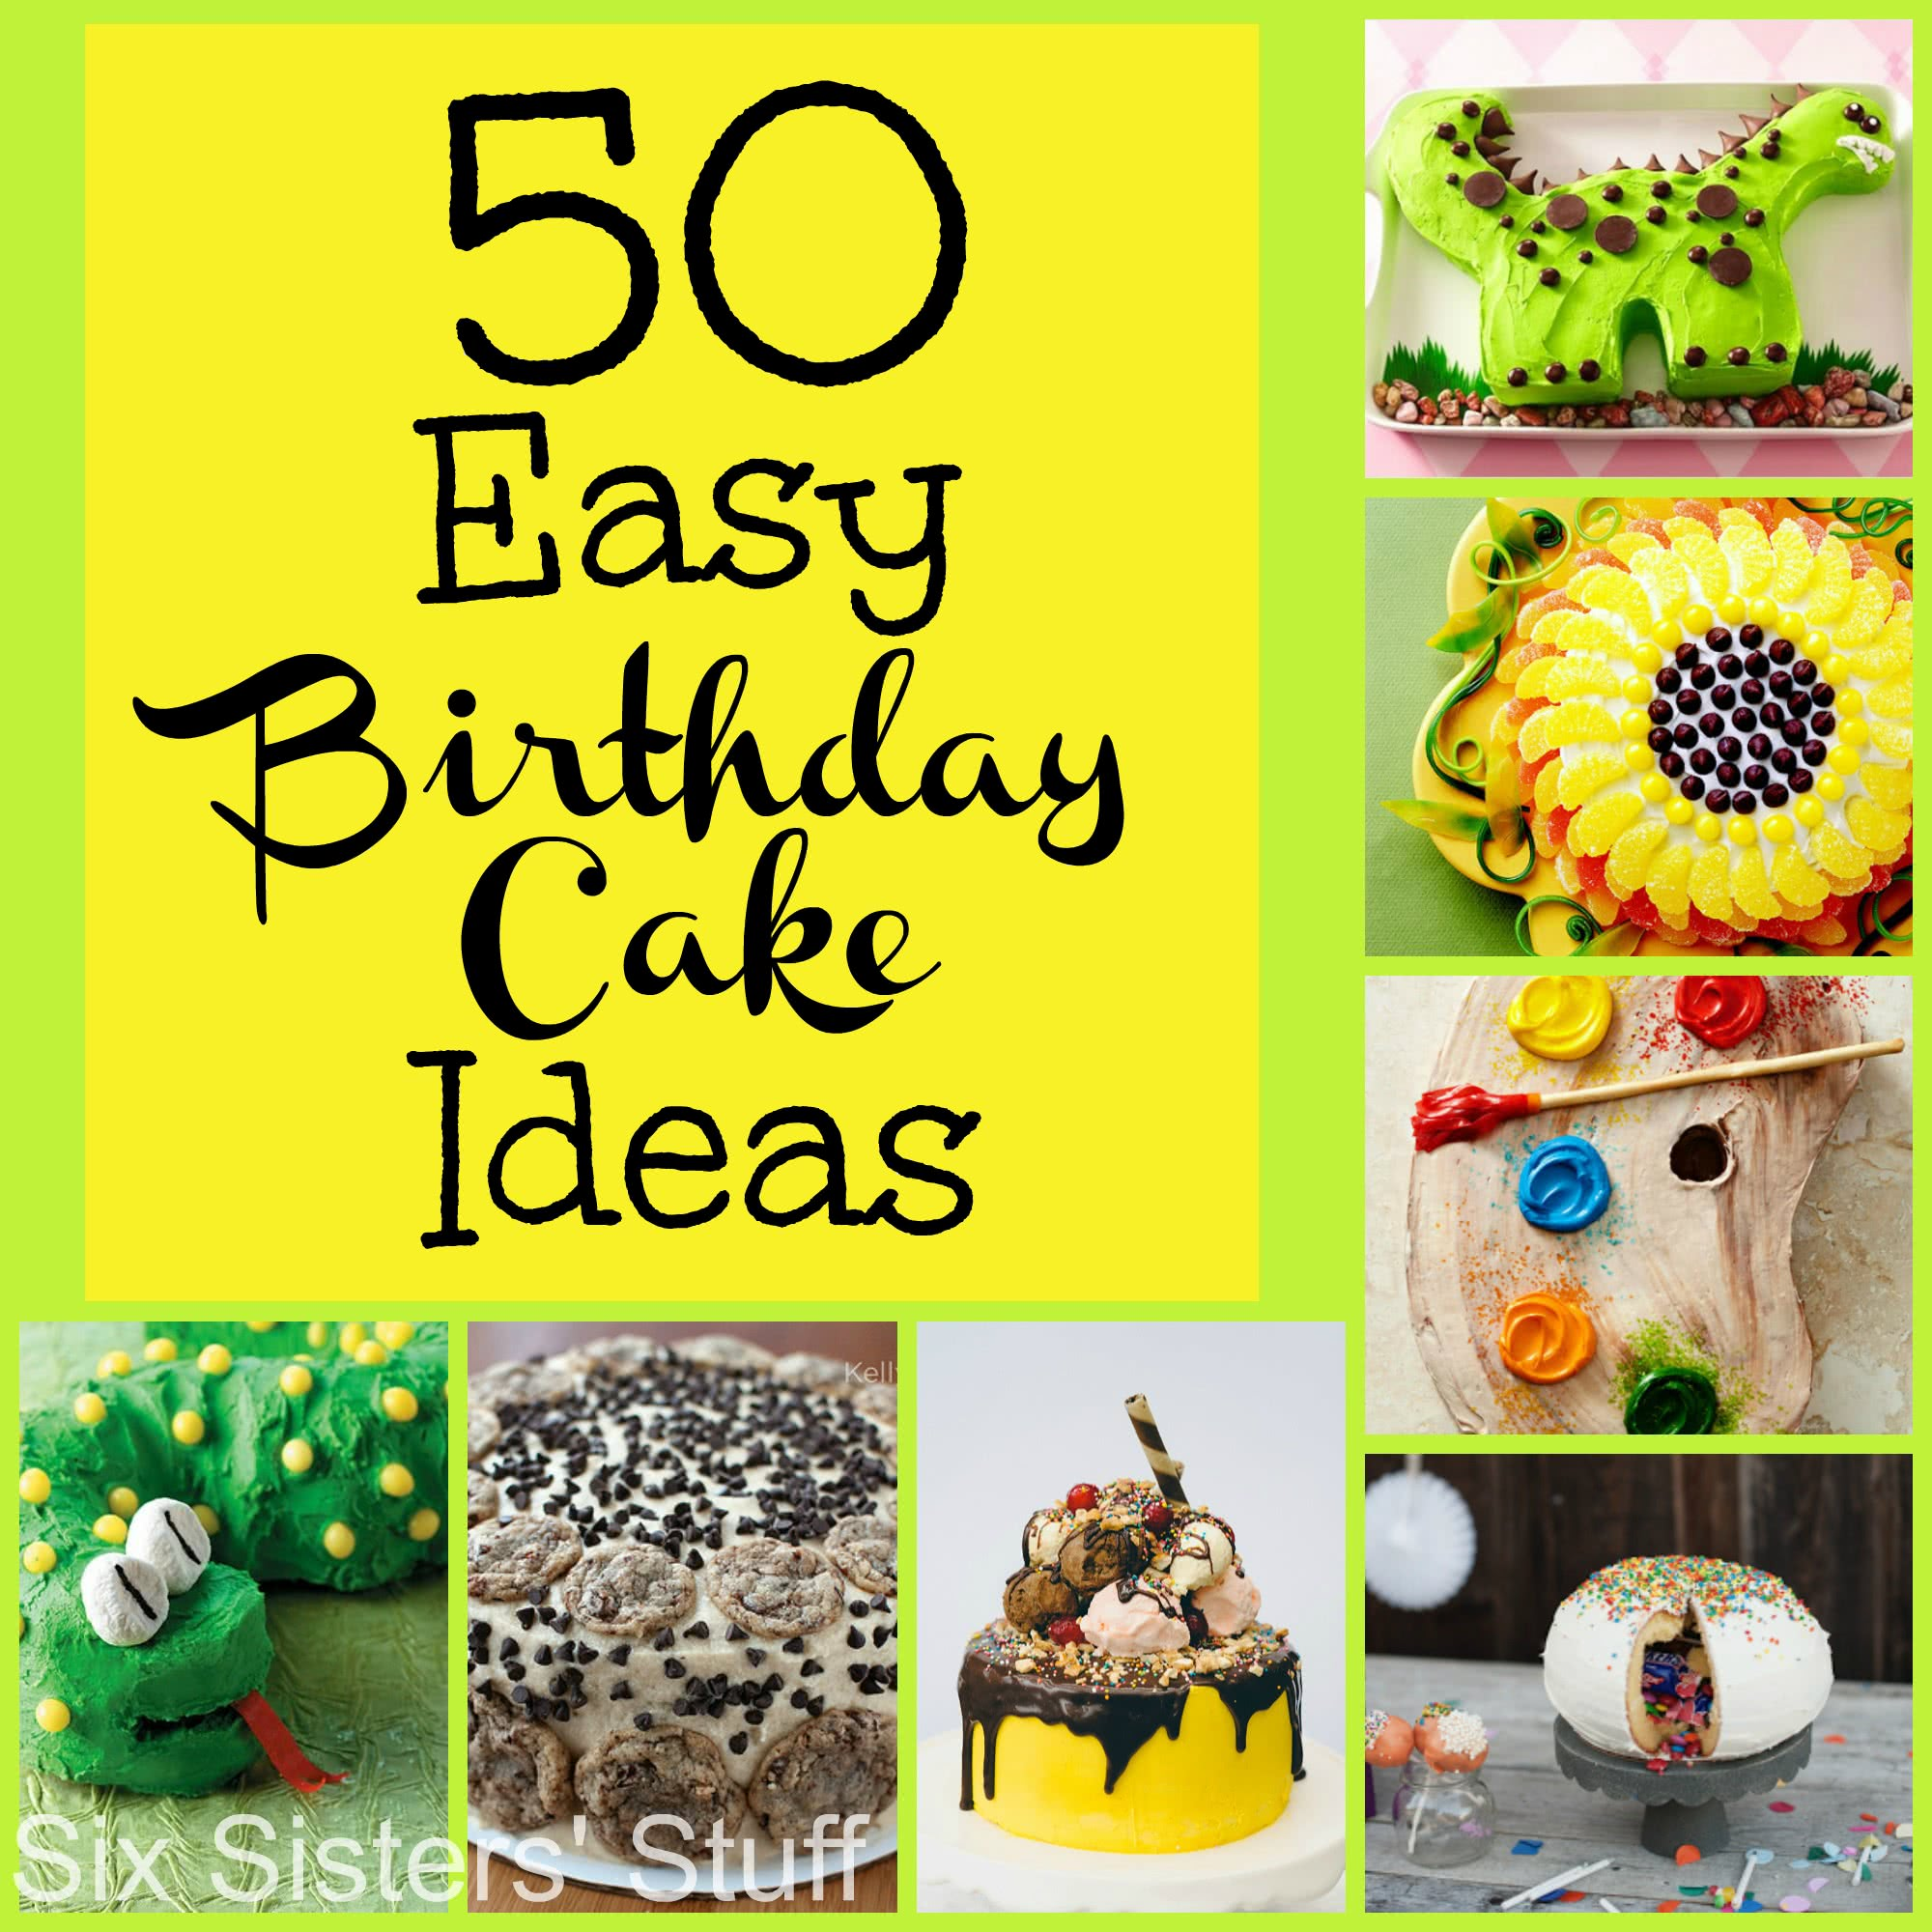 50 Easy Birthday Cake Ideas